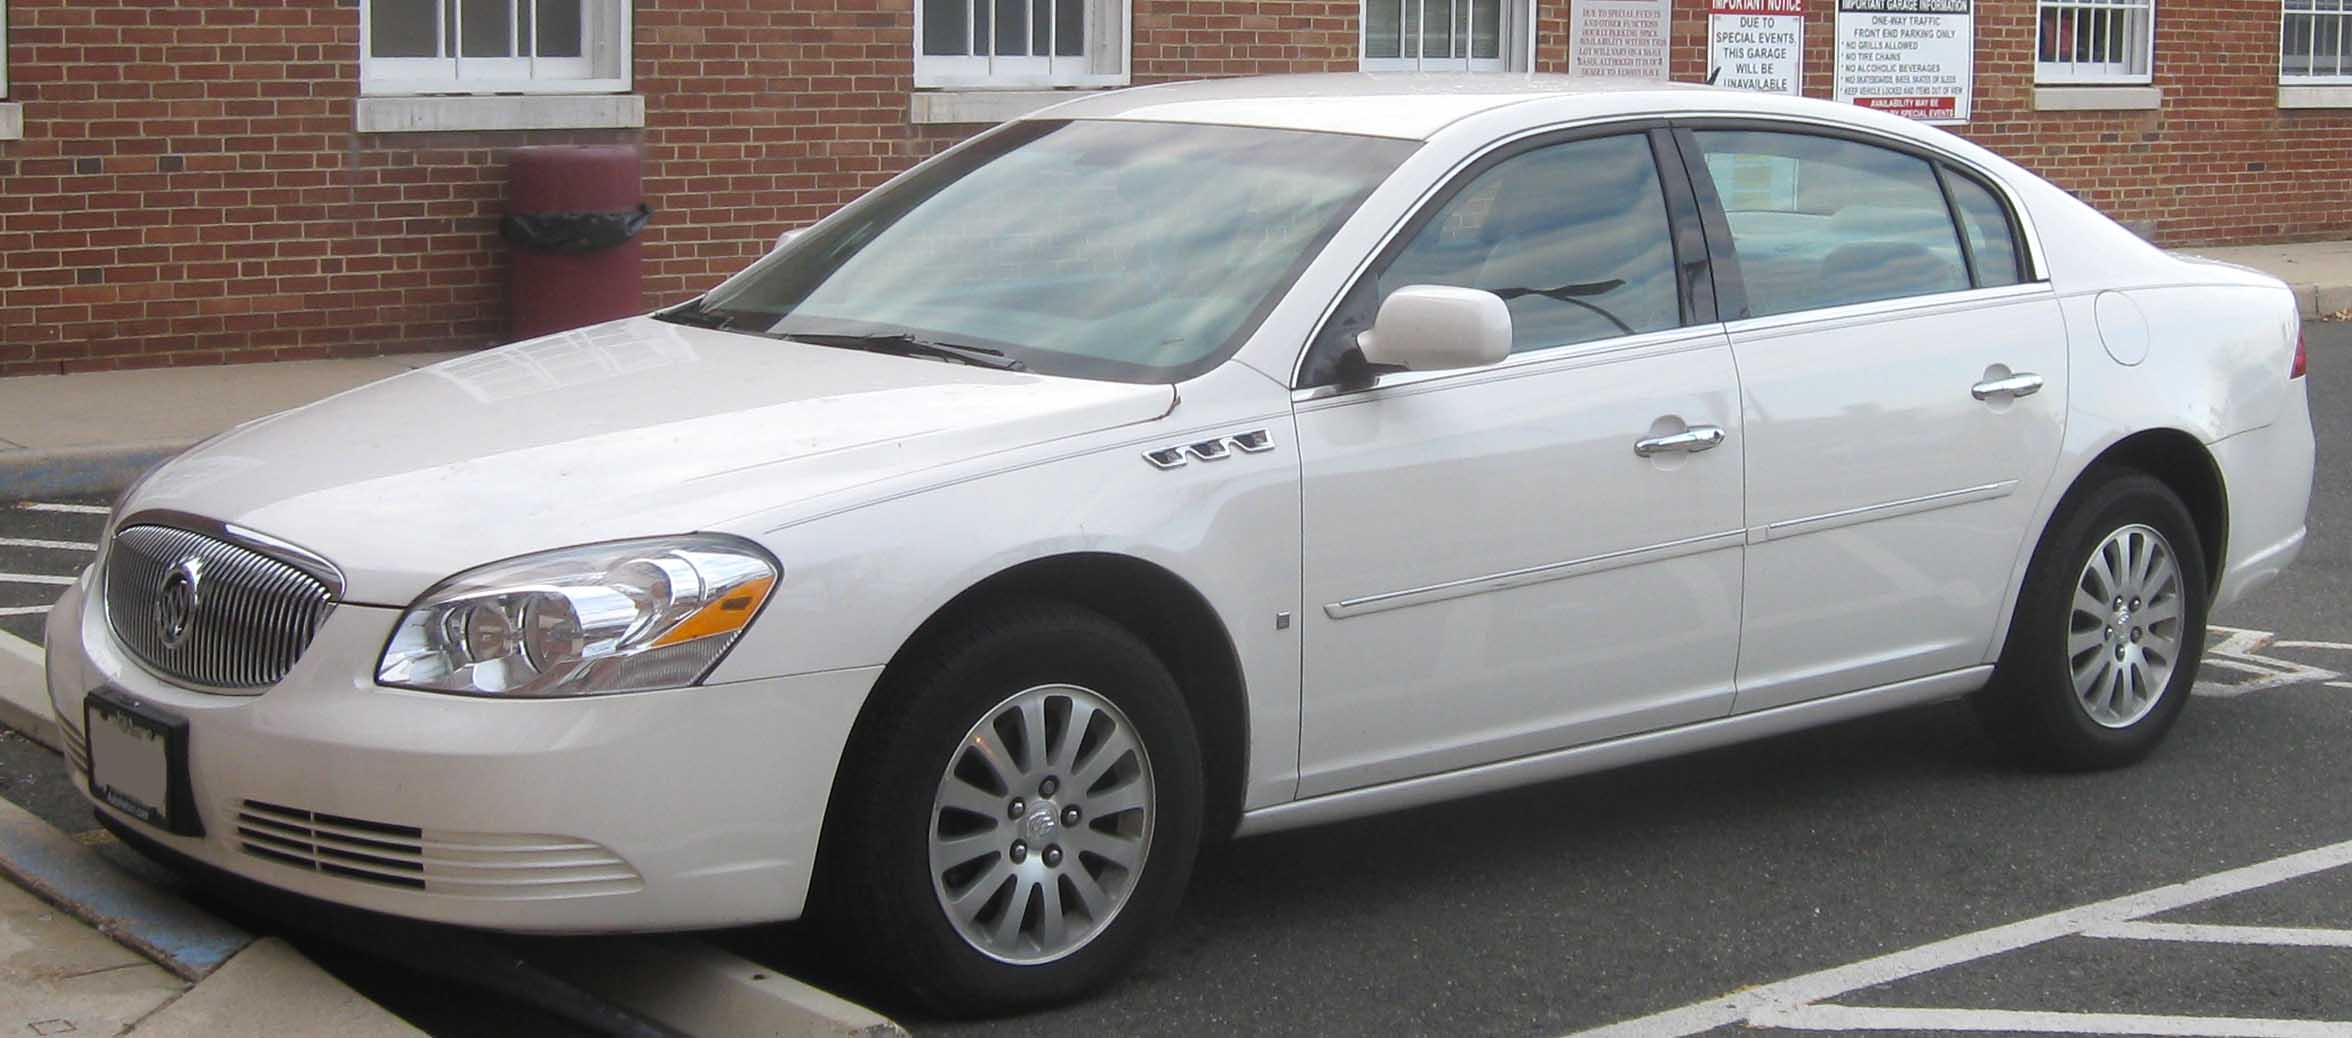 Pictures of buick lucerne #4